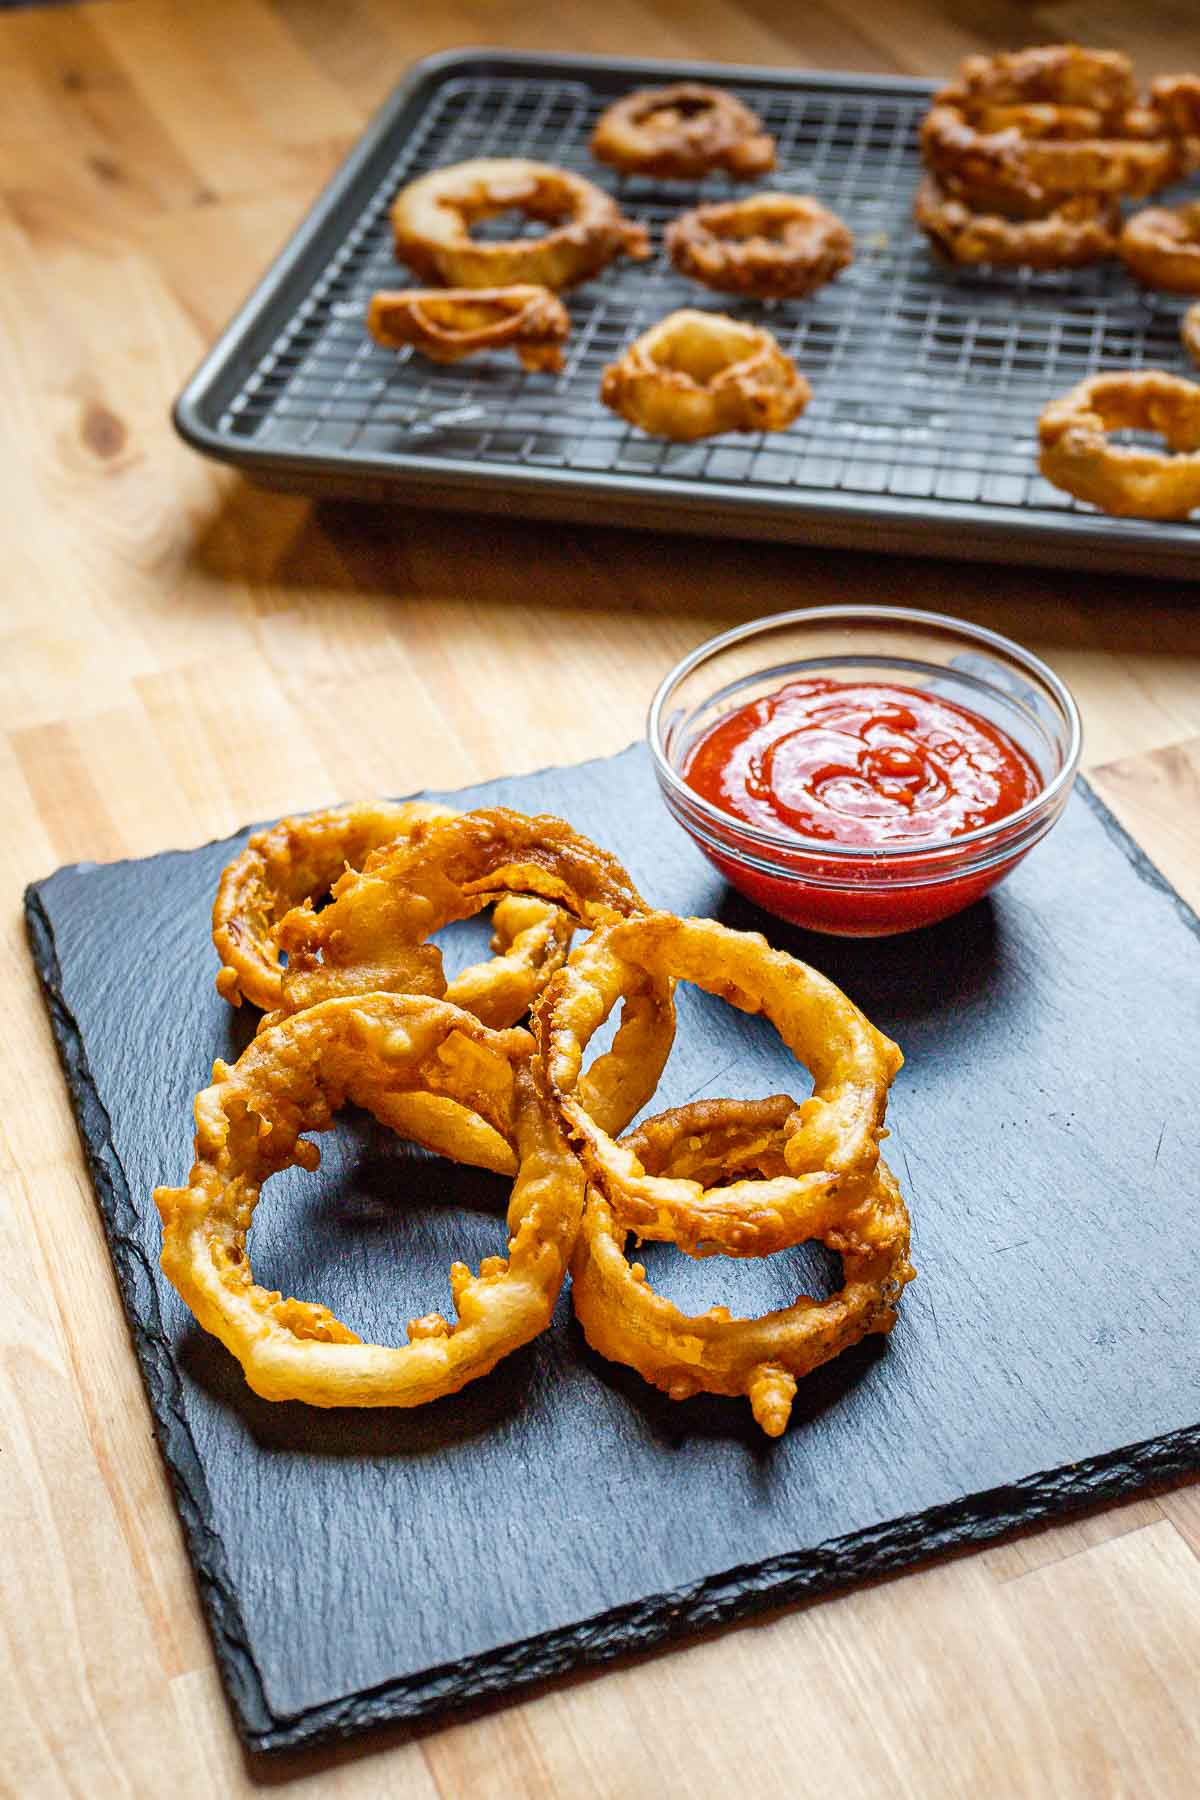 Onion rings and ketchup on table with sheet pan of extra onion rings in background.